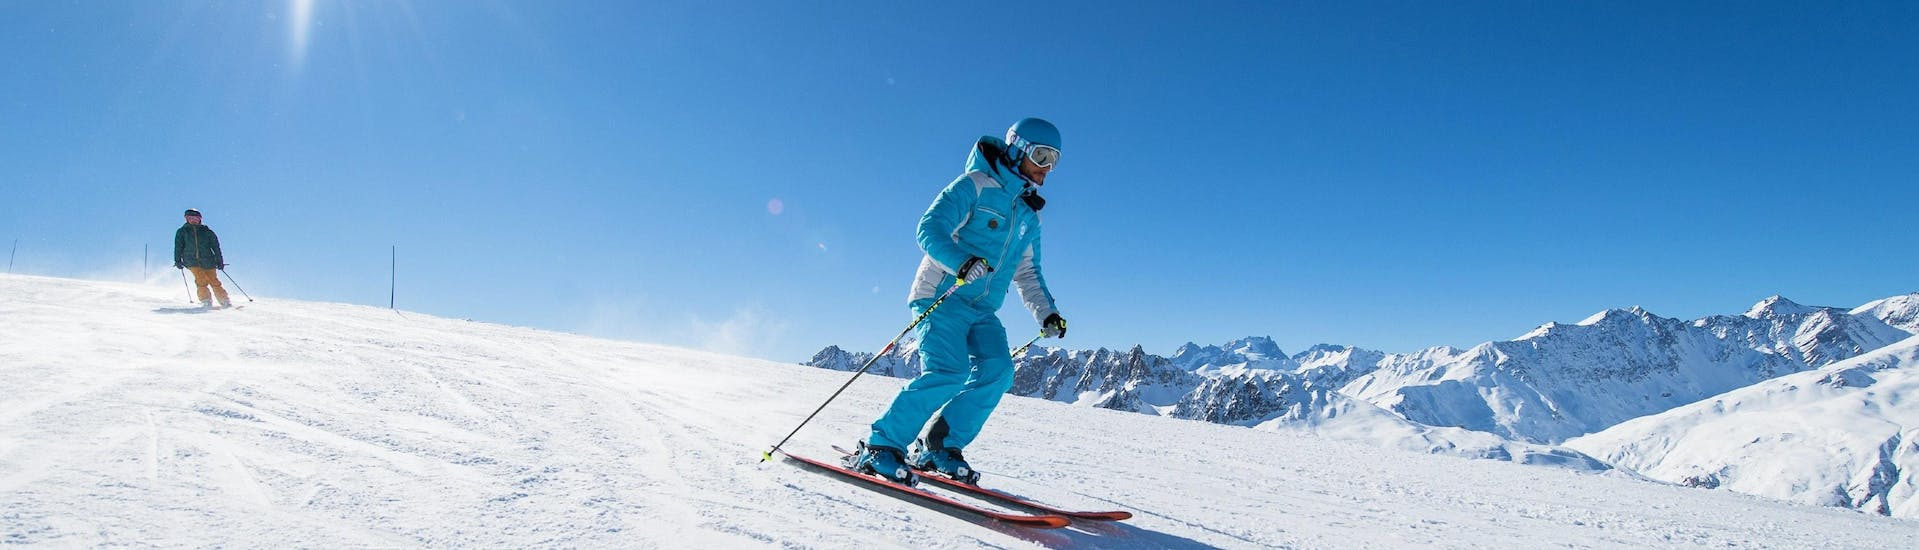 A ski instructor from the ski school ESI Ski Family in Val Thorens is leading the way during Private Ski Lessons for Adults of All Levels - Afternoon